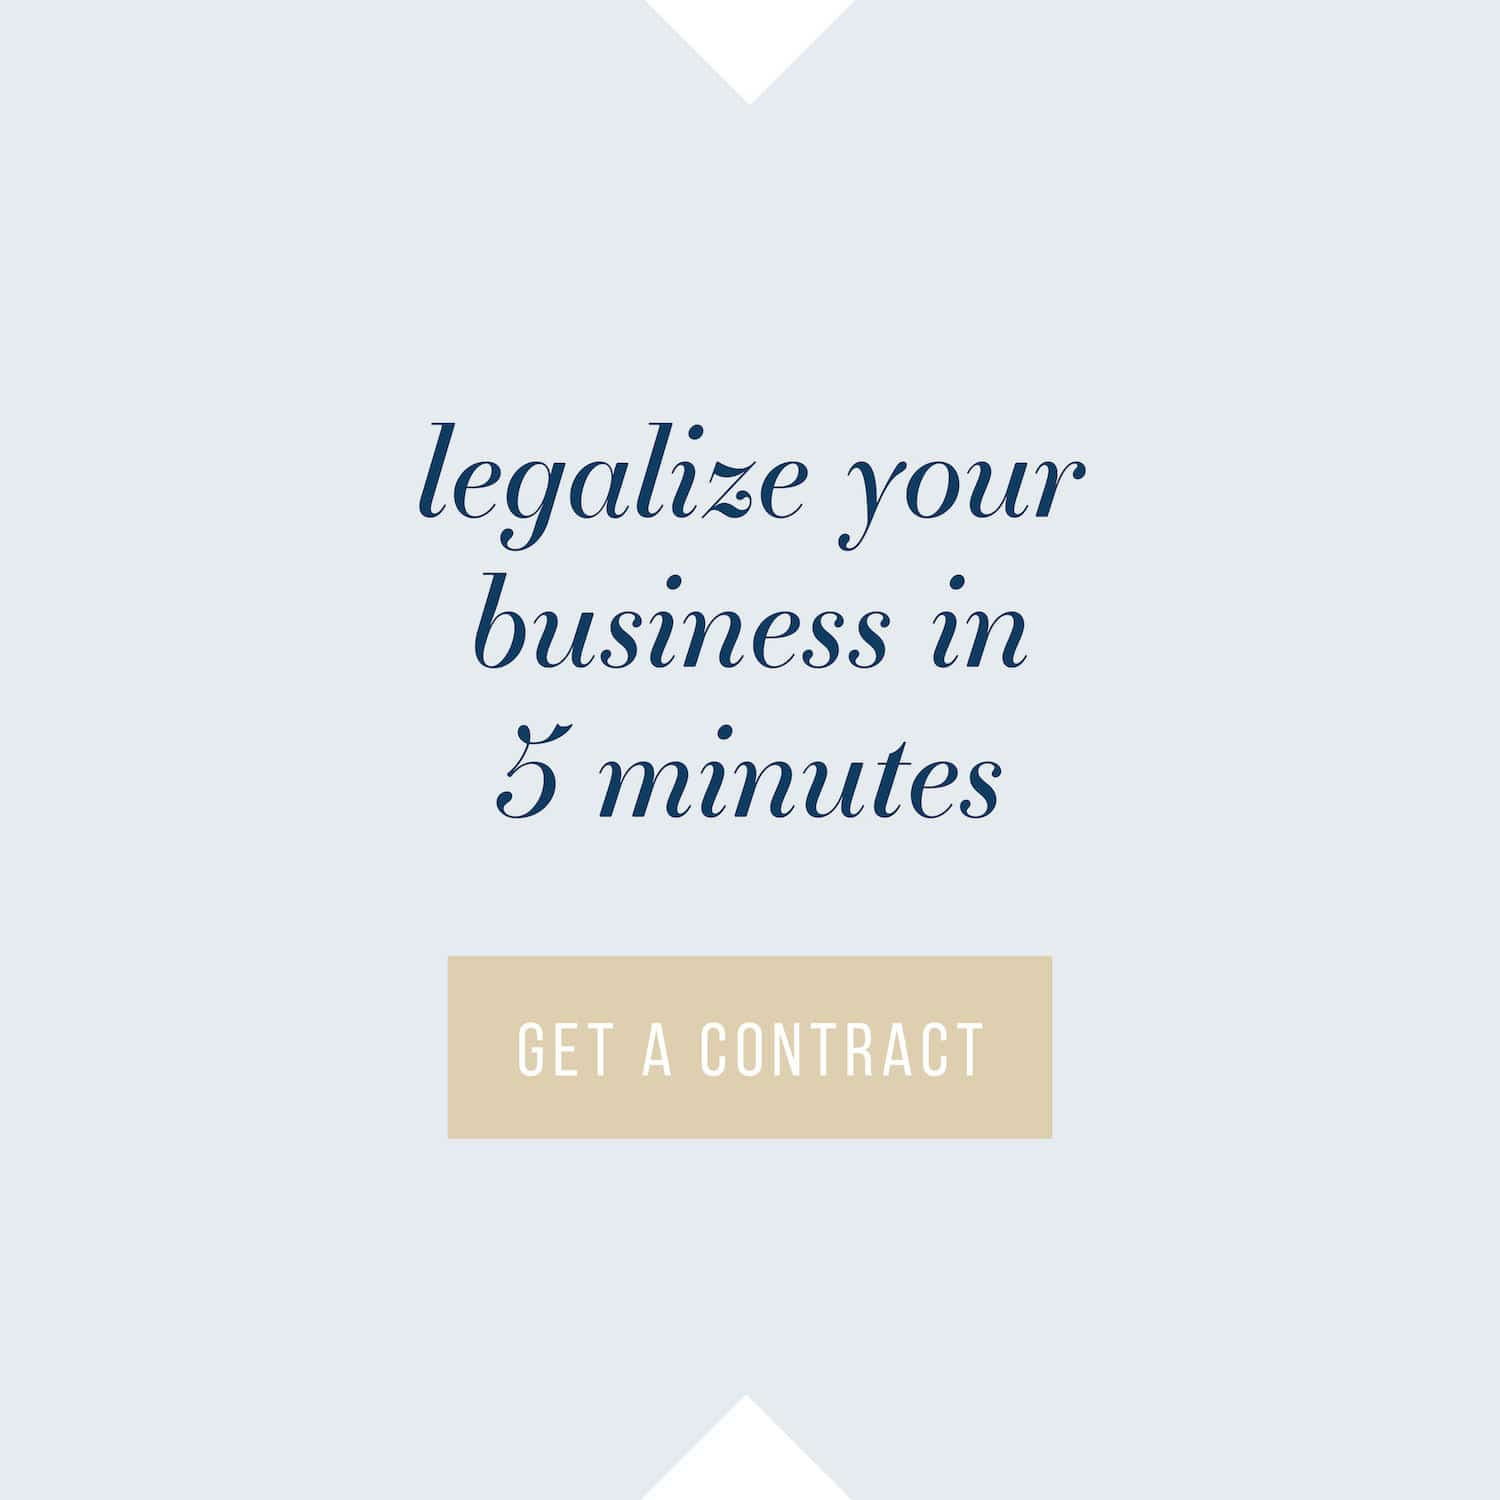 Legalize your business in 5 minutes with The Contract Shop